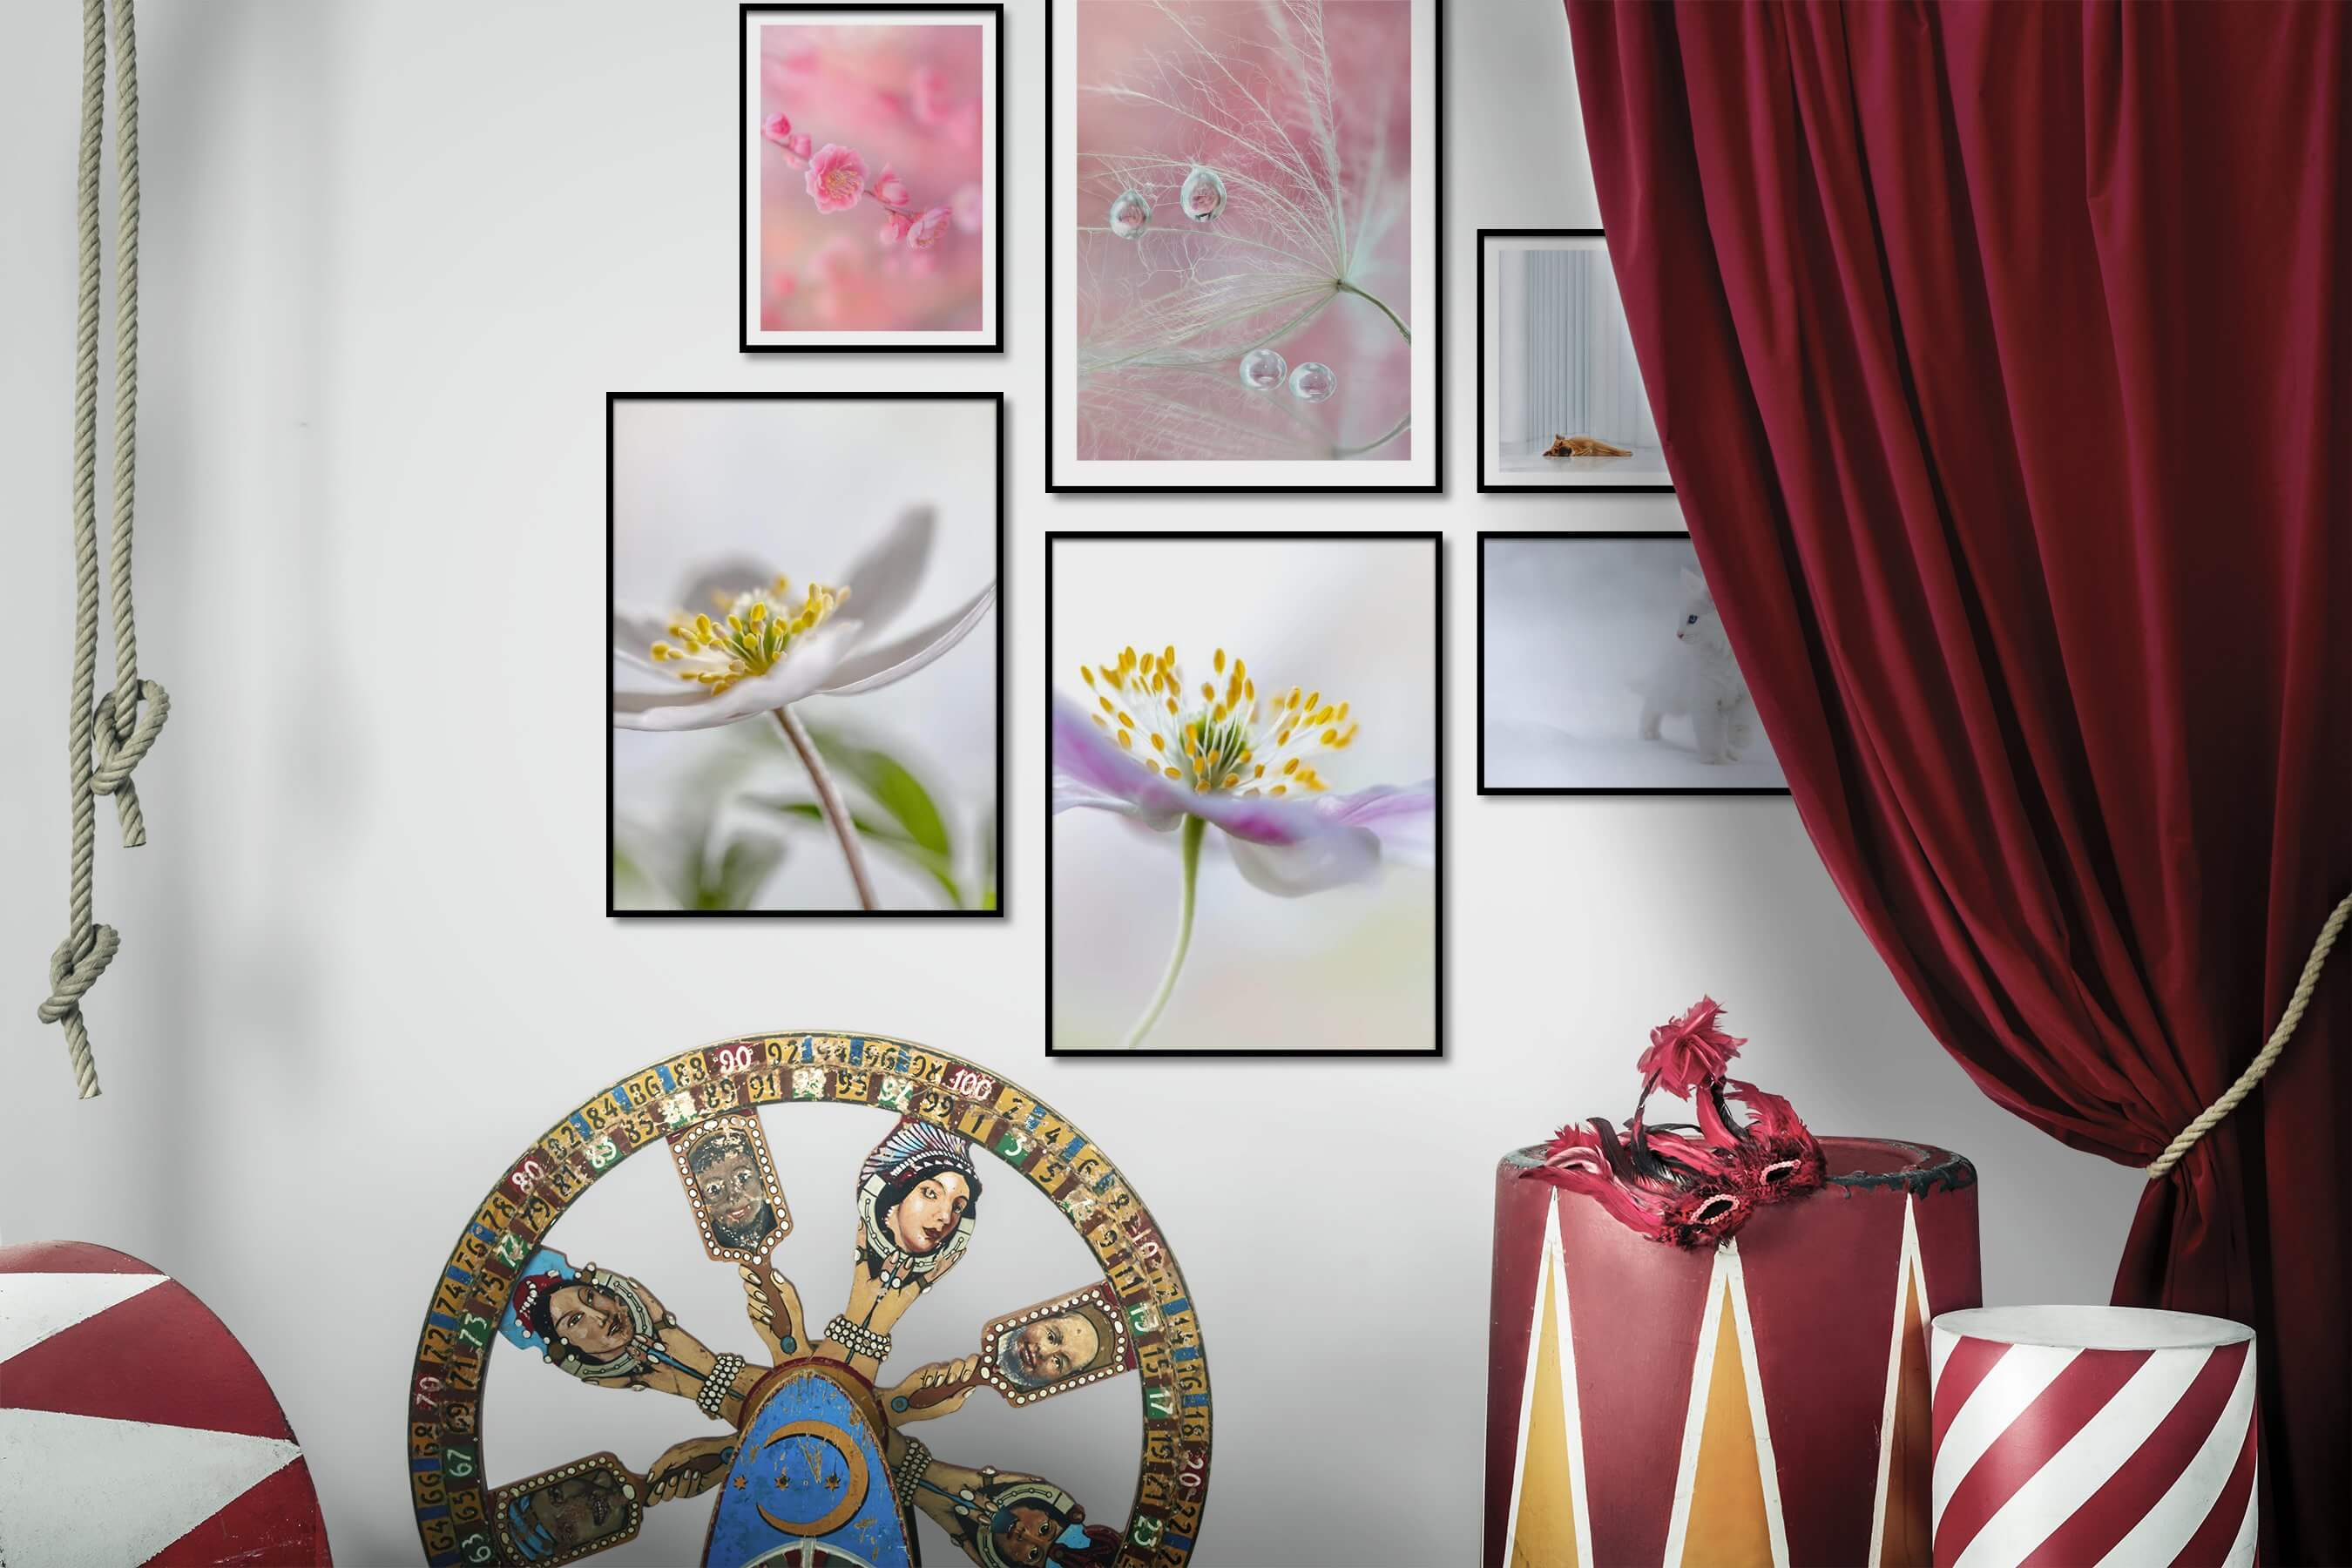 Gallery wall idea with six framed pictures arranged on a wall depicting Flowers & Plants, Mindfulness, For the Minimalist, For the Moderate, and Animals